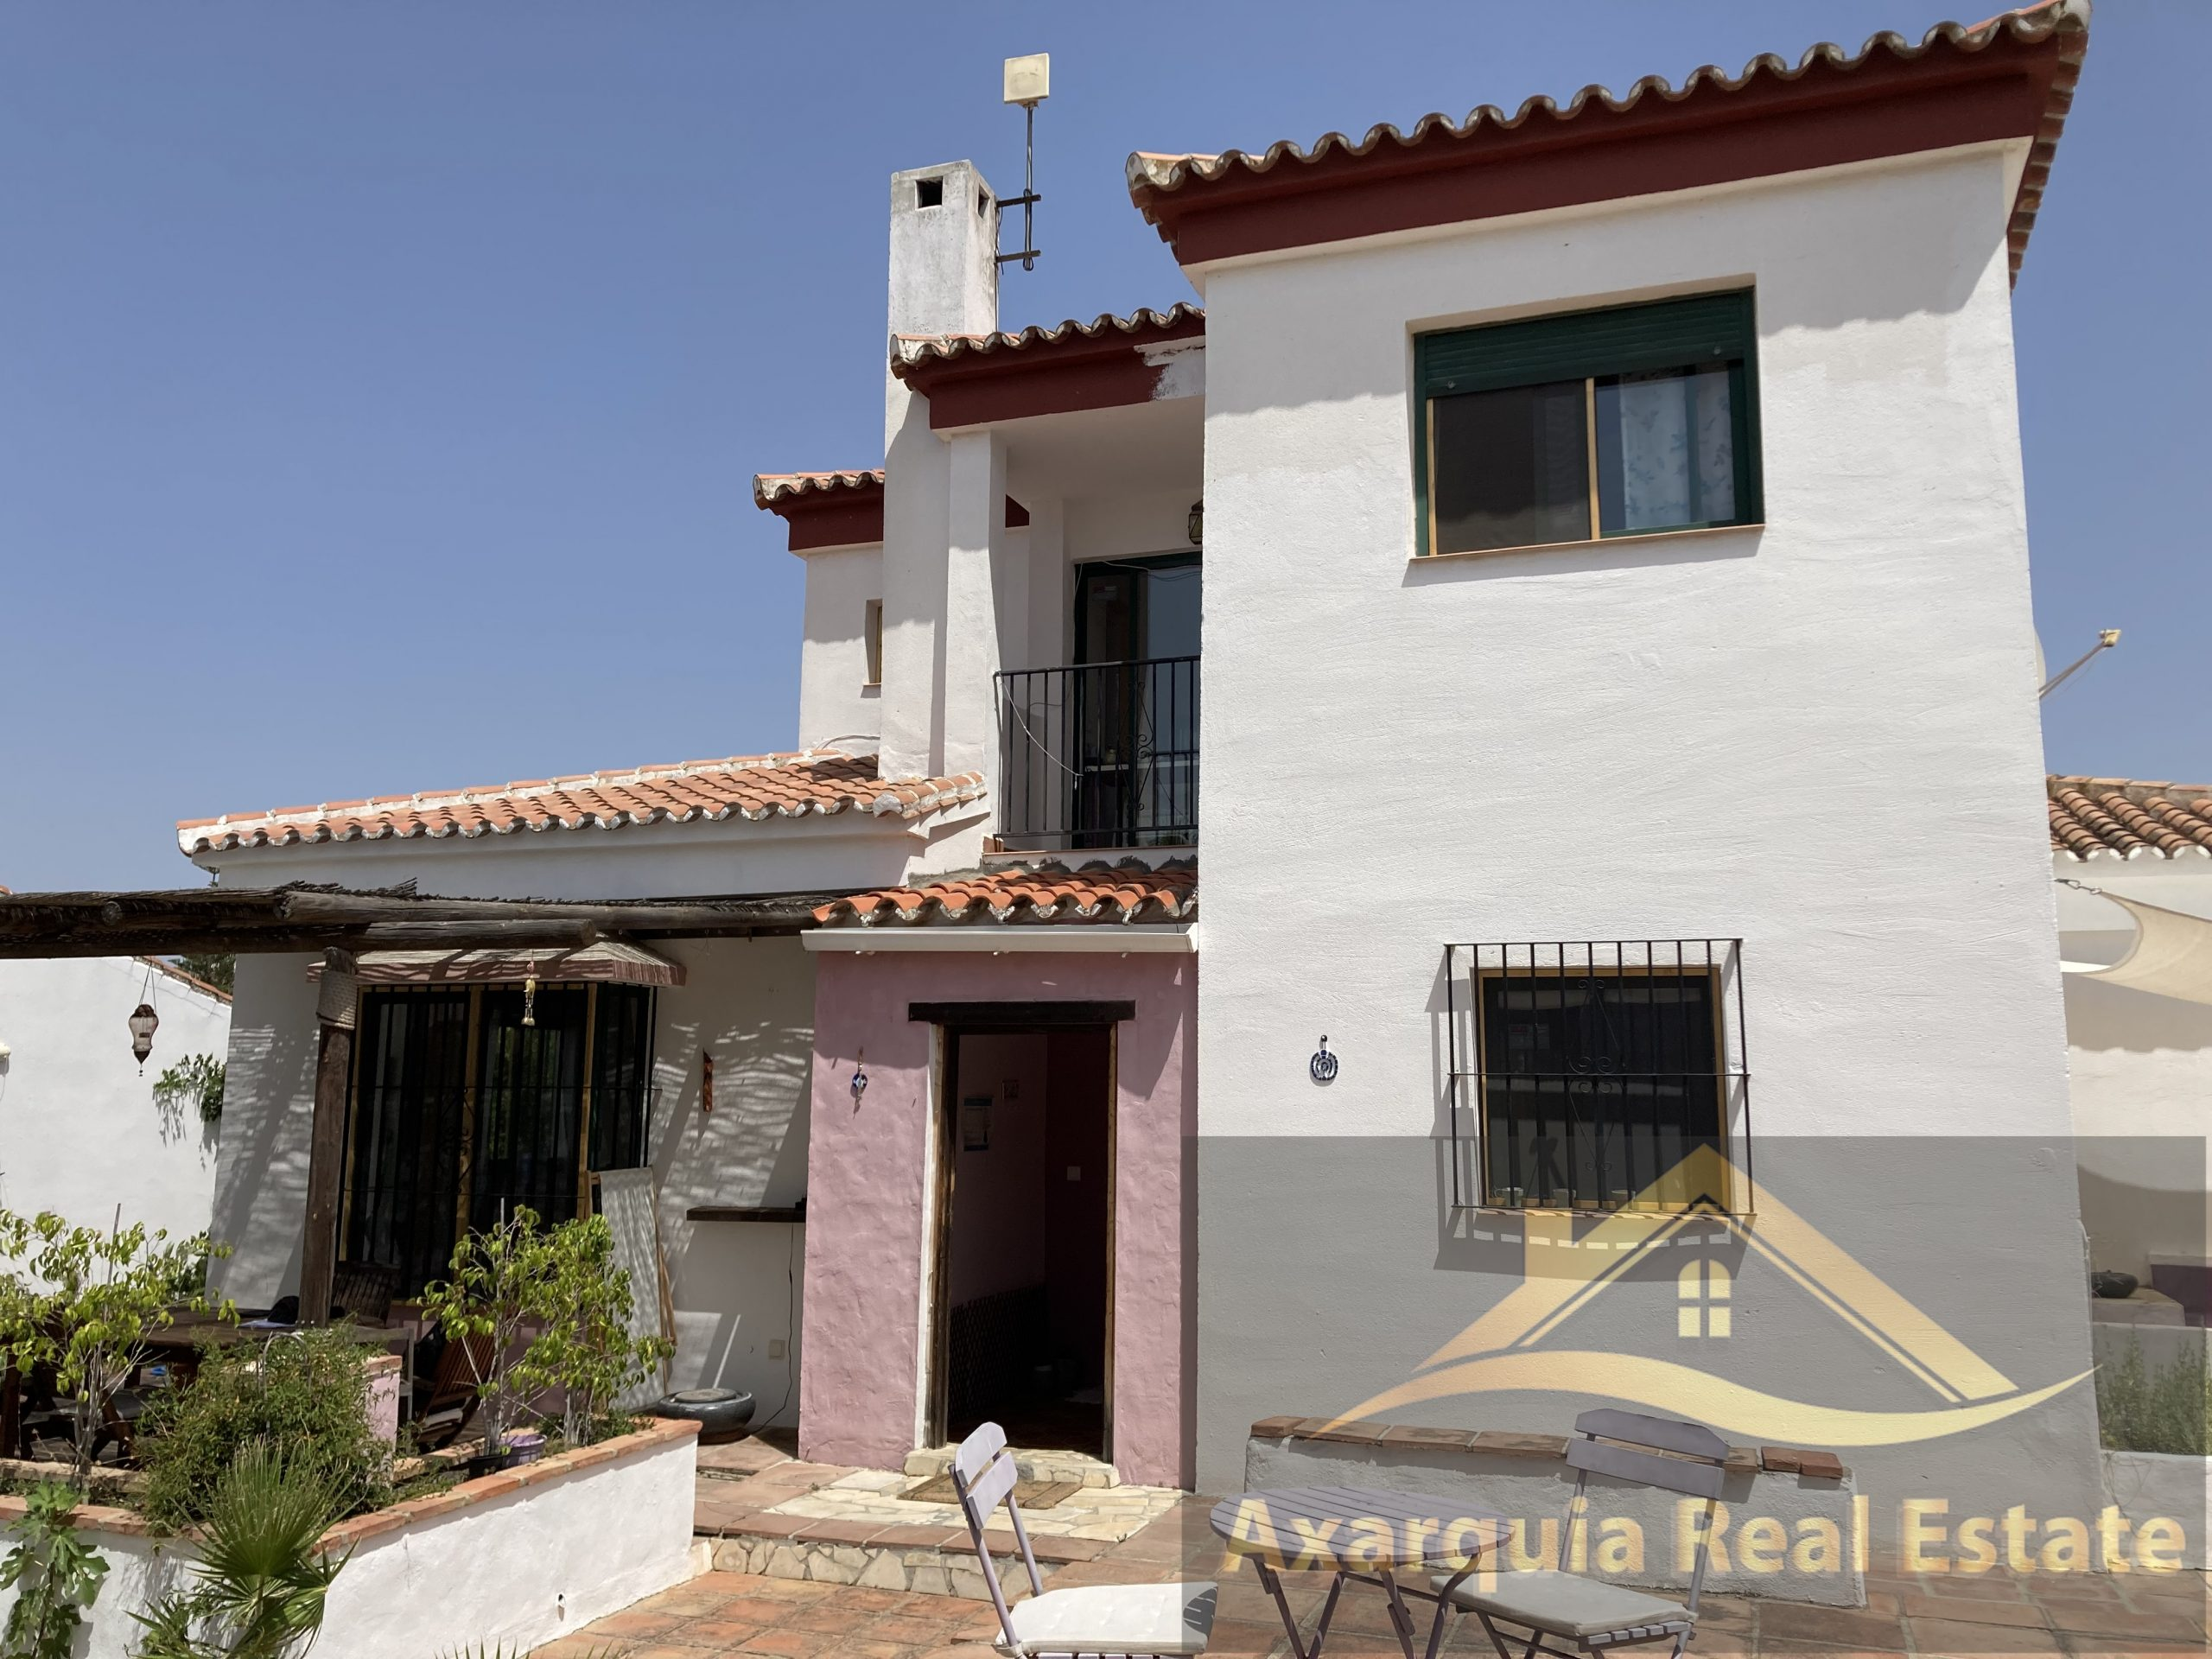 3 bedroom Villa in Puente don Manuel with swimming pool.